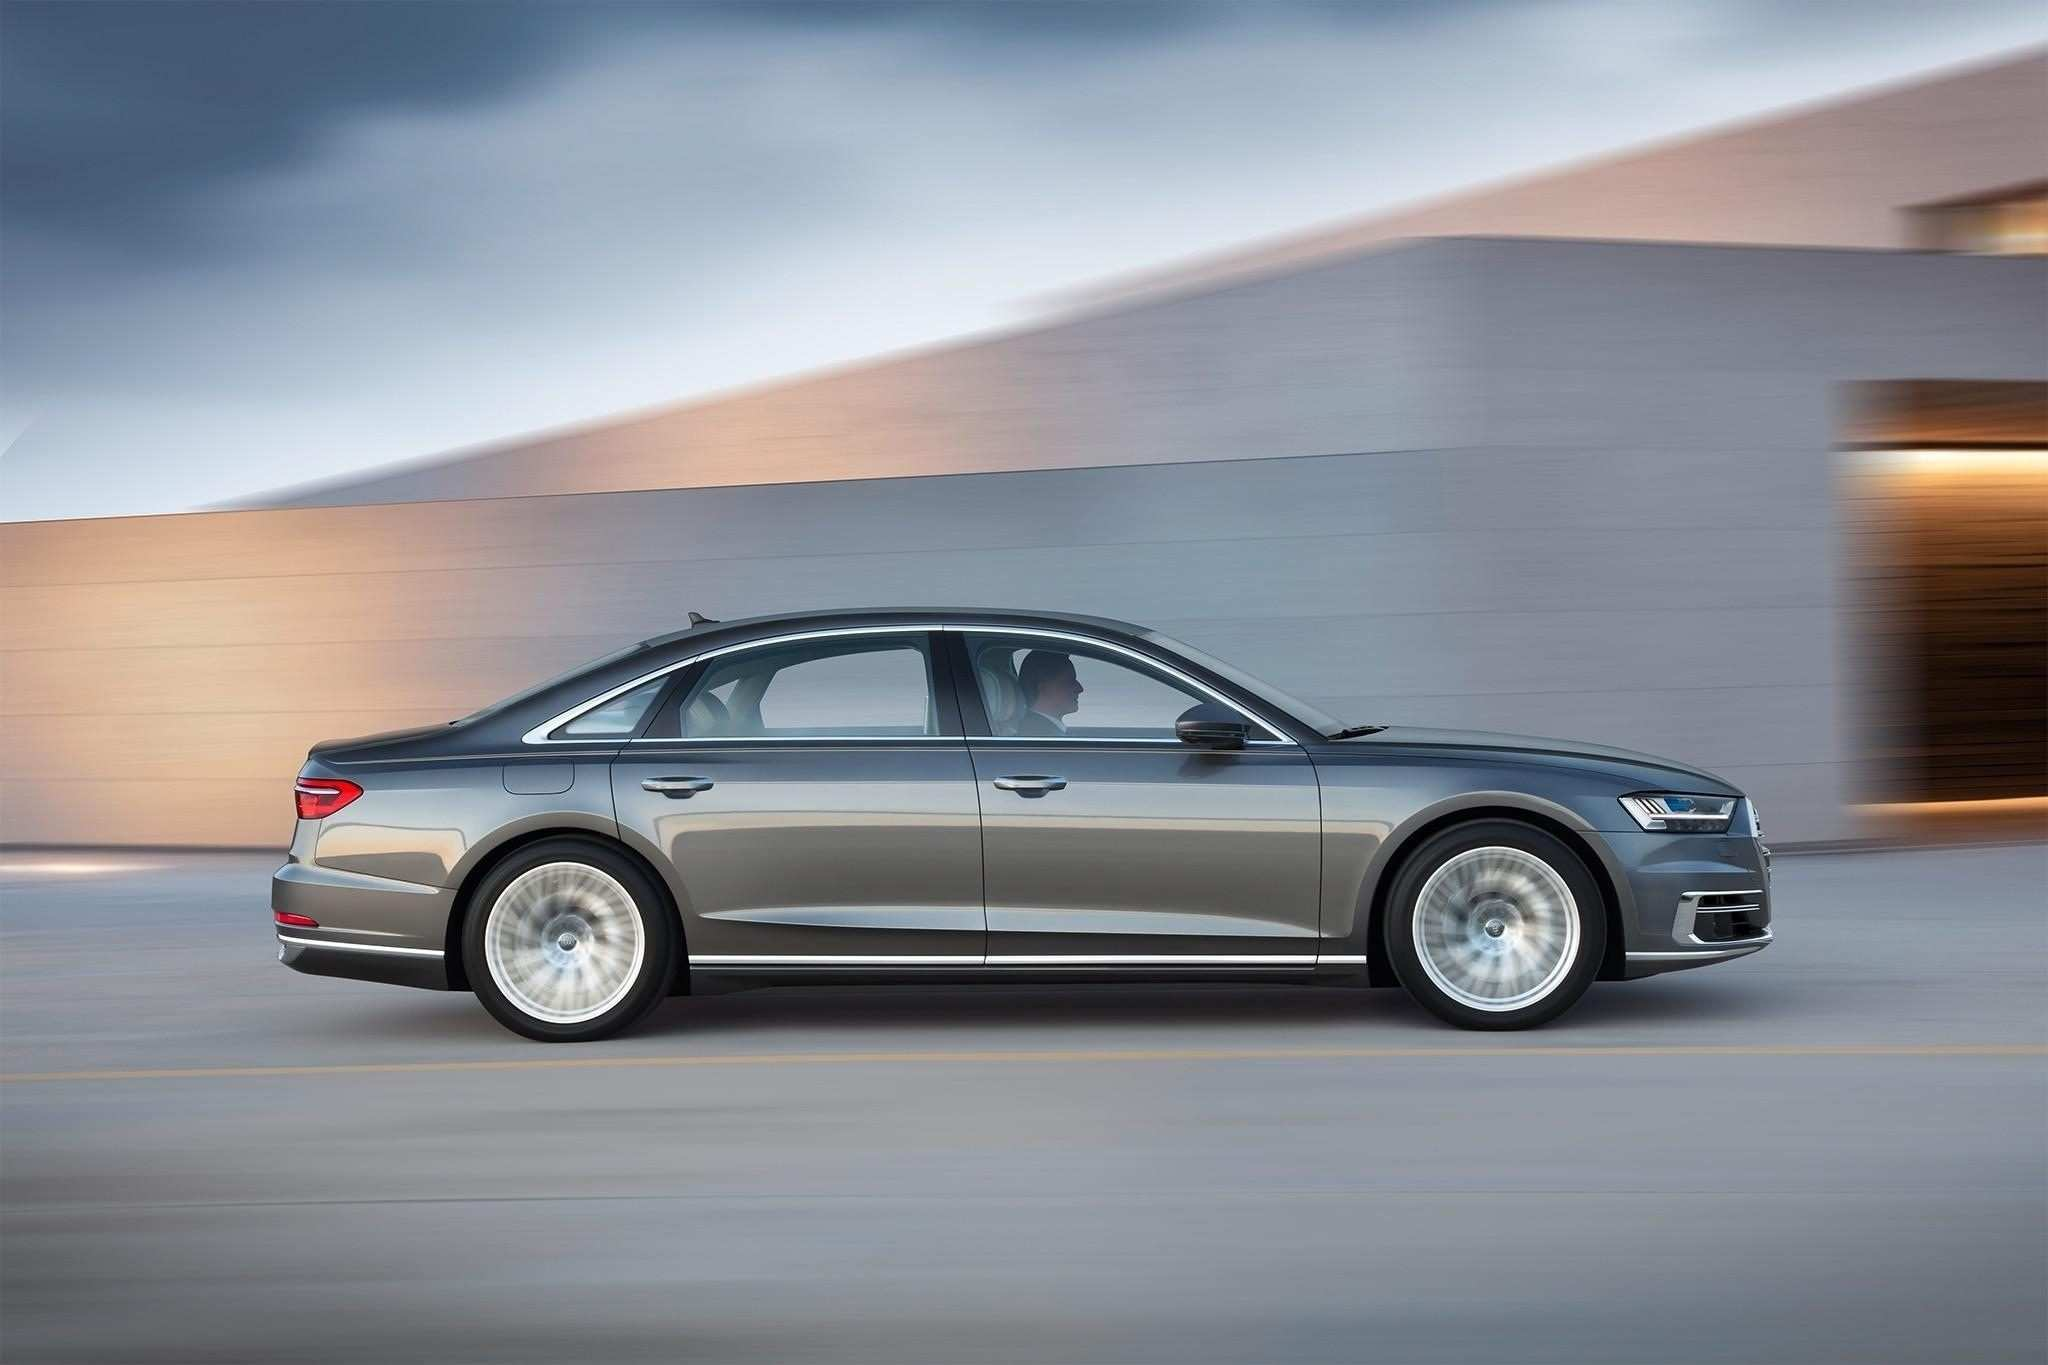 43 New 2019 Audi A8 L In Usa Price Design And Review